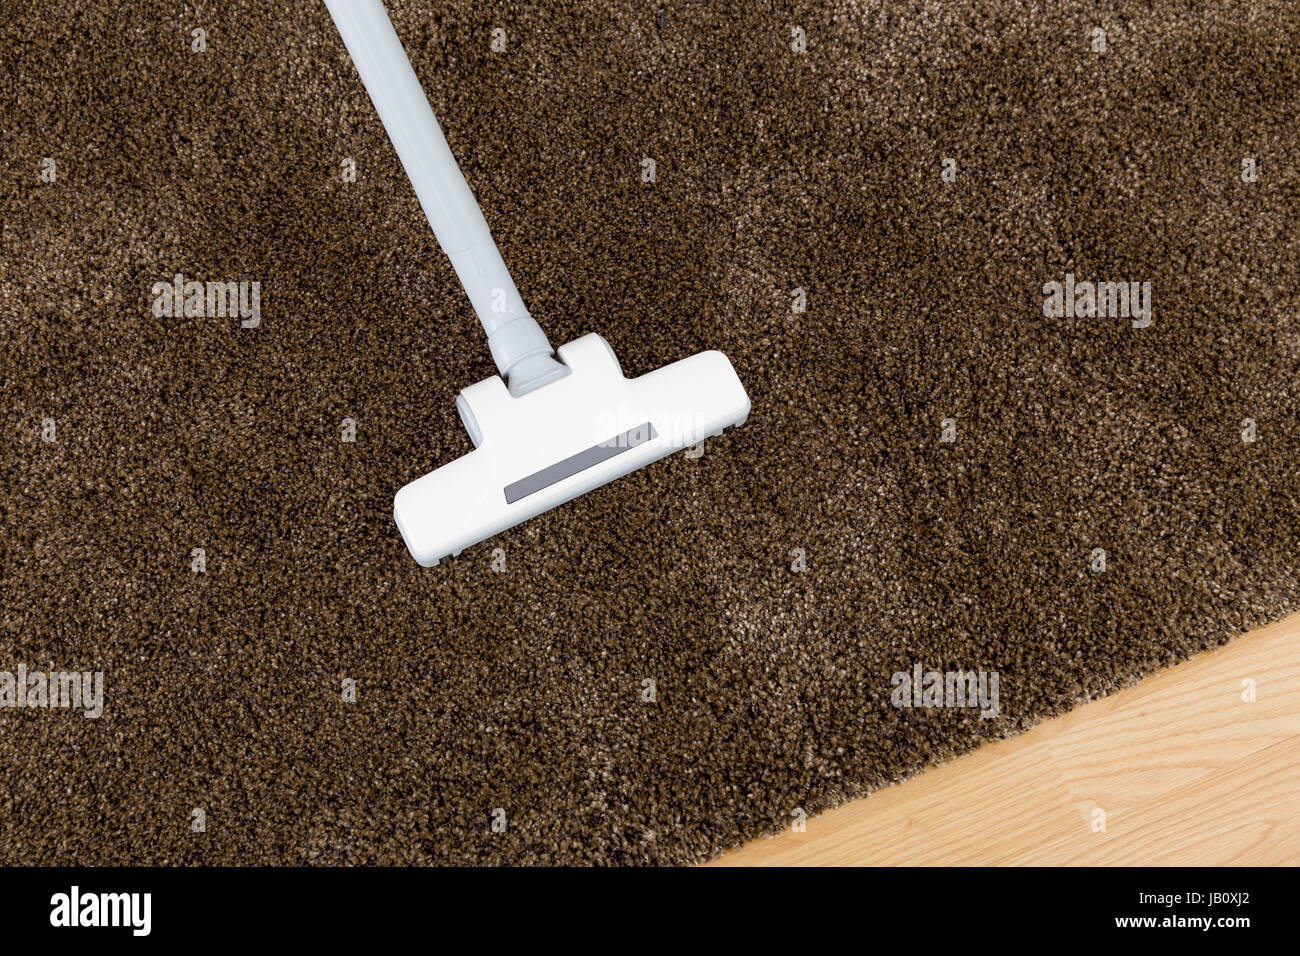 Brown carpet with vacuum cleaner - Stock Image